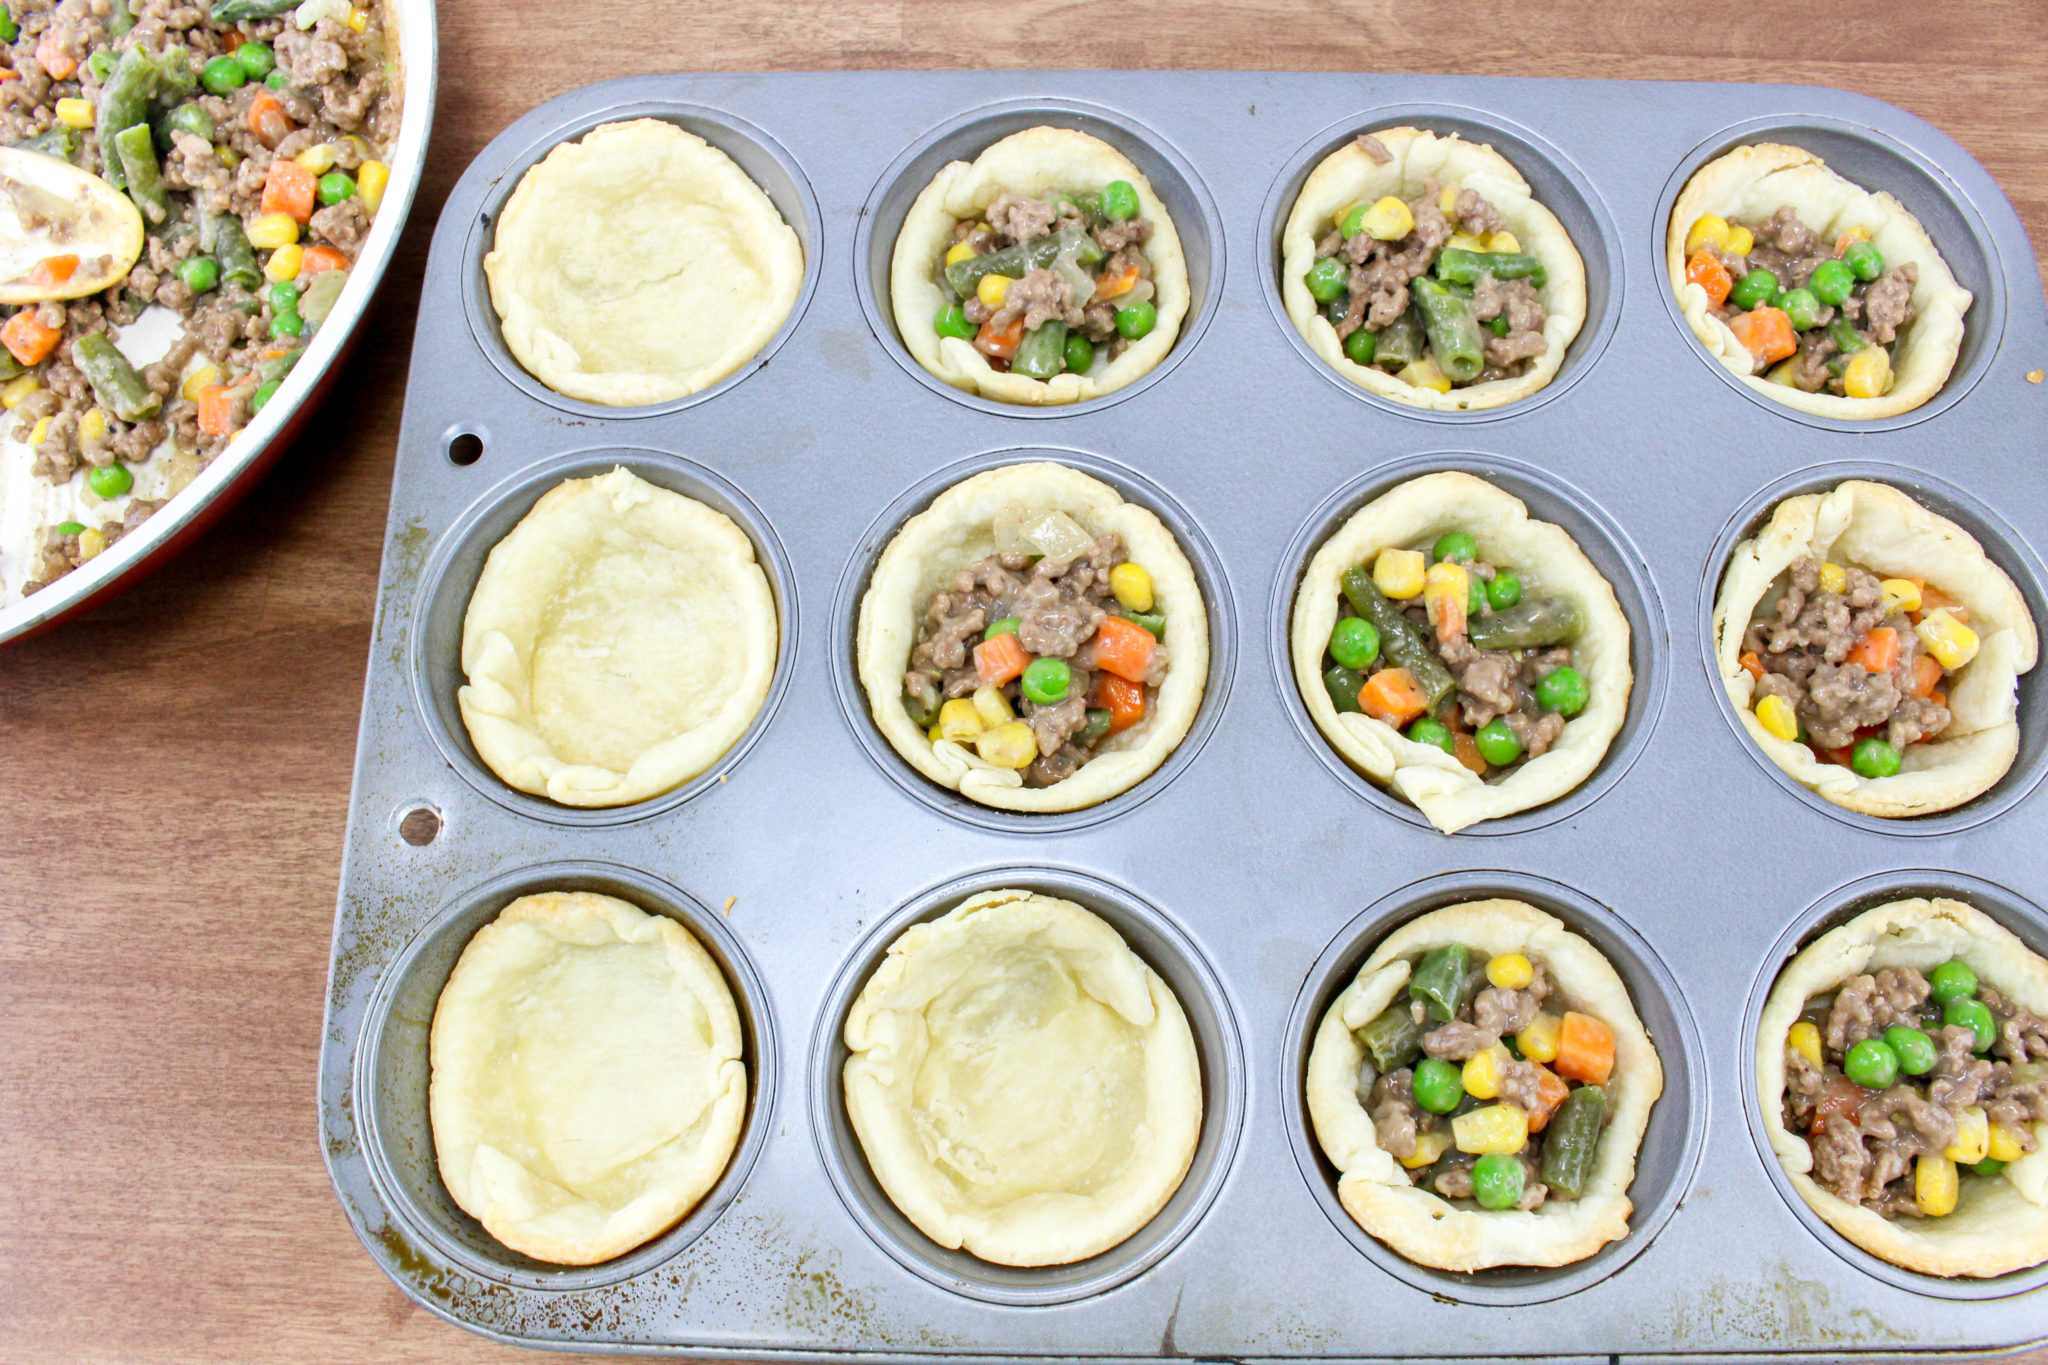 These Mini Shepherd's Pot Pies are a perfect winter meal! They are really easy to make, ready in 30 minutes or less and they will definitely fill your family's tummies.